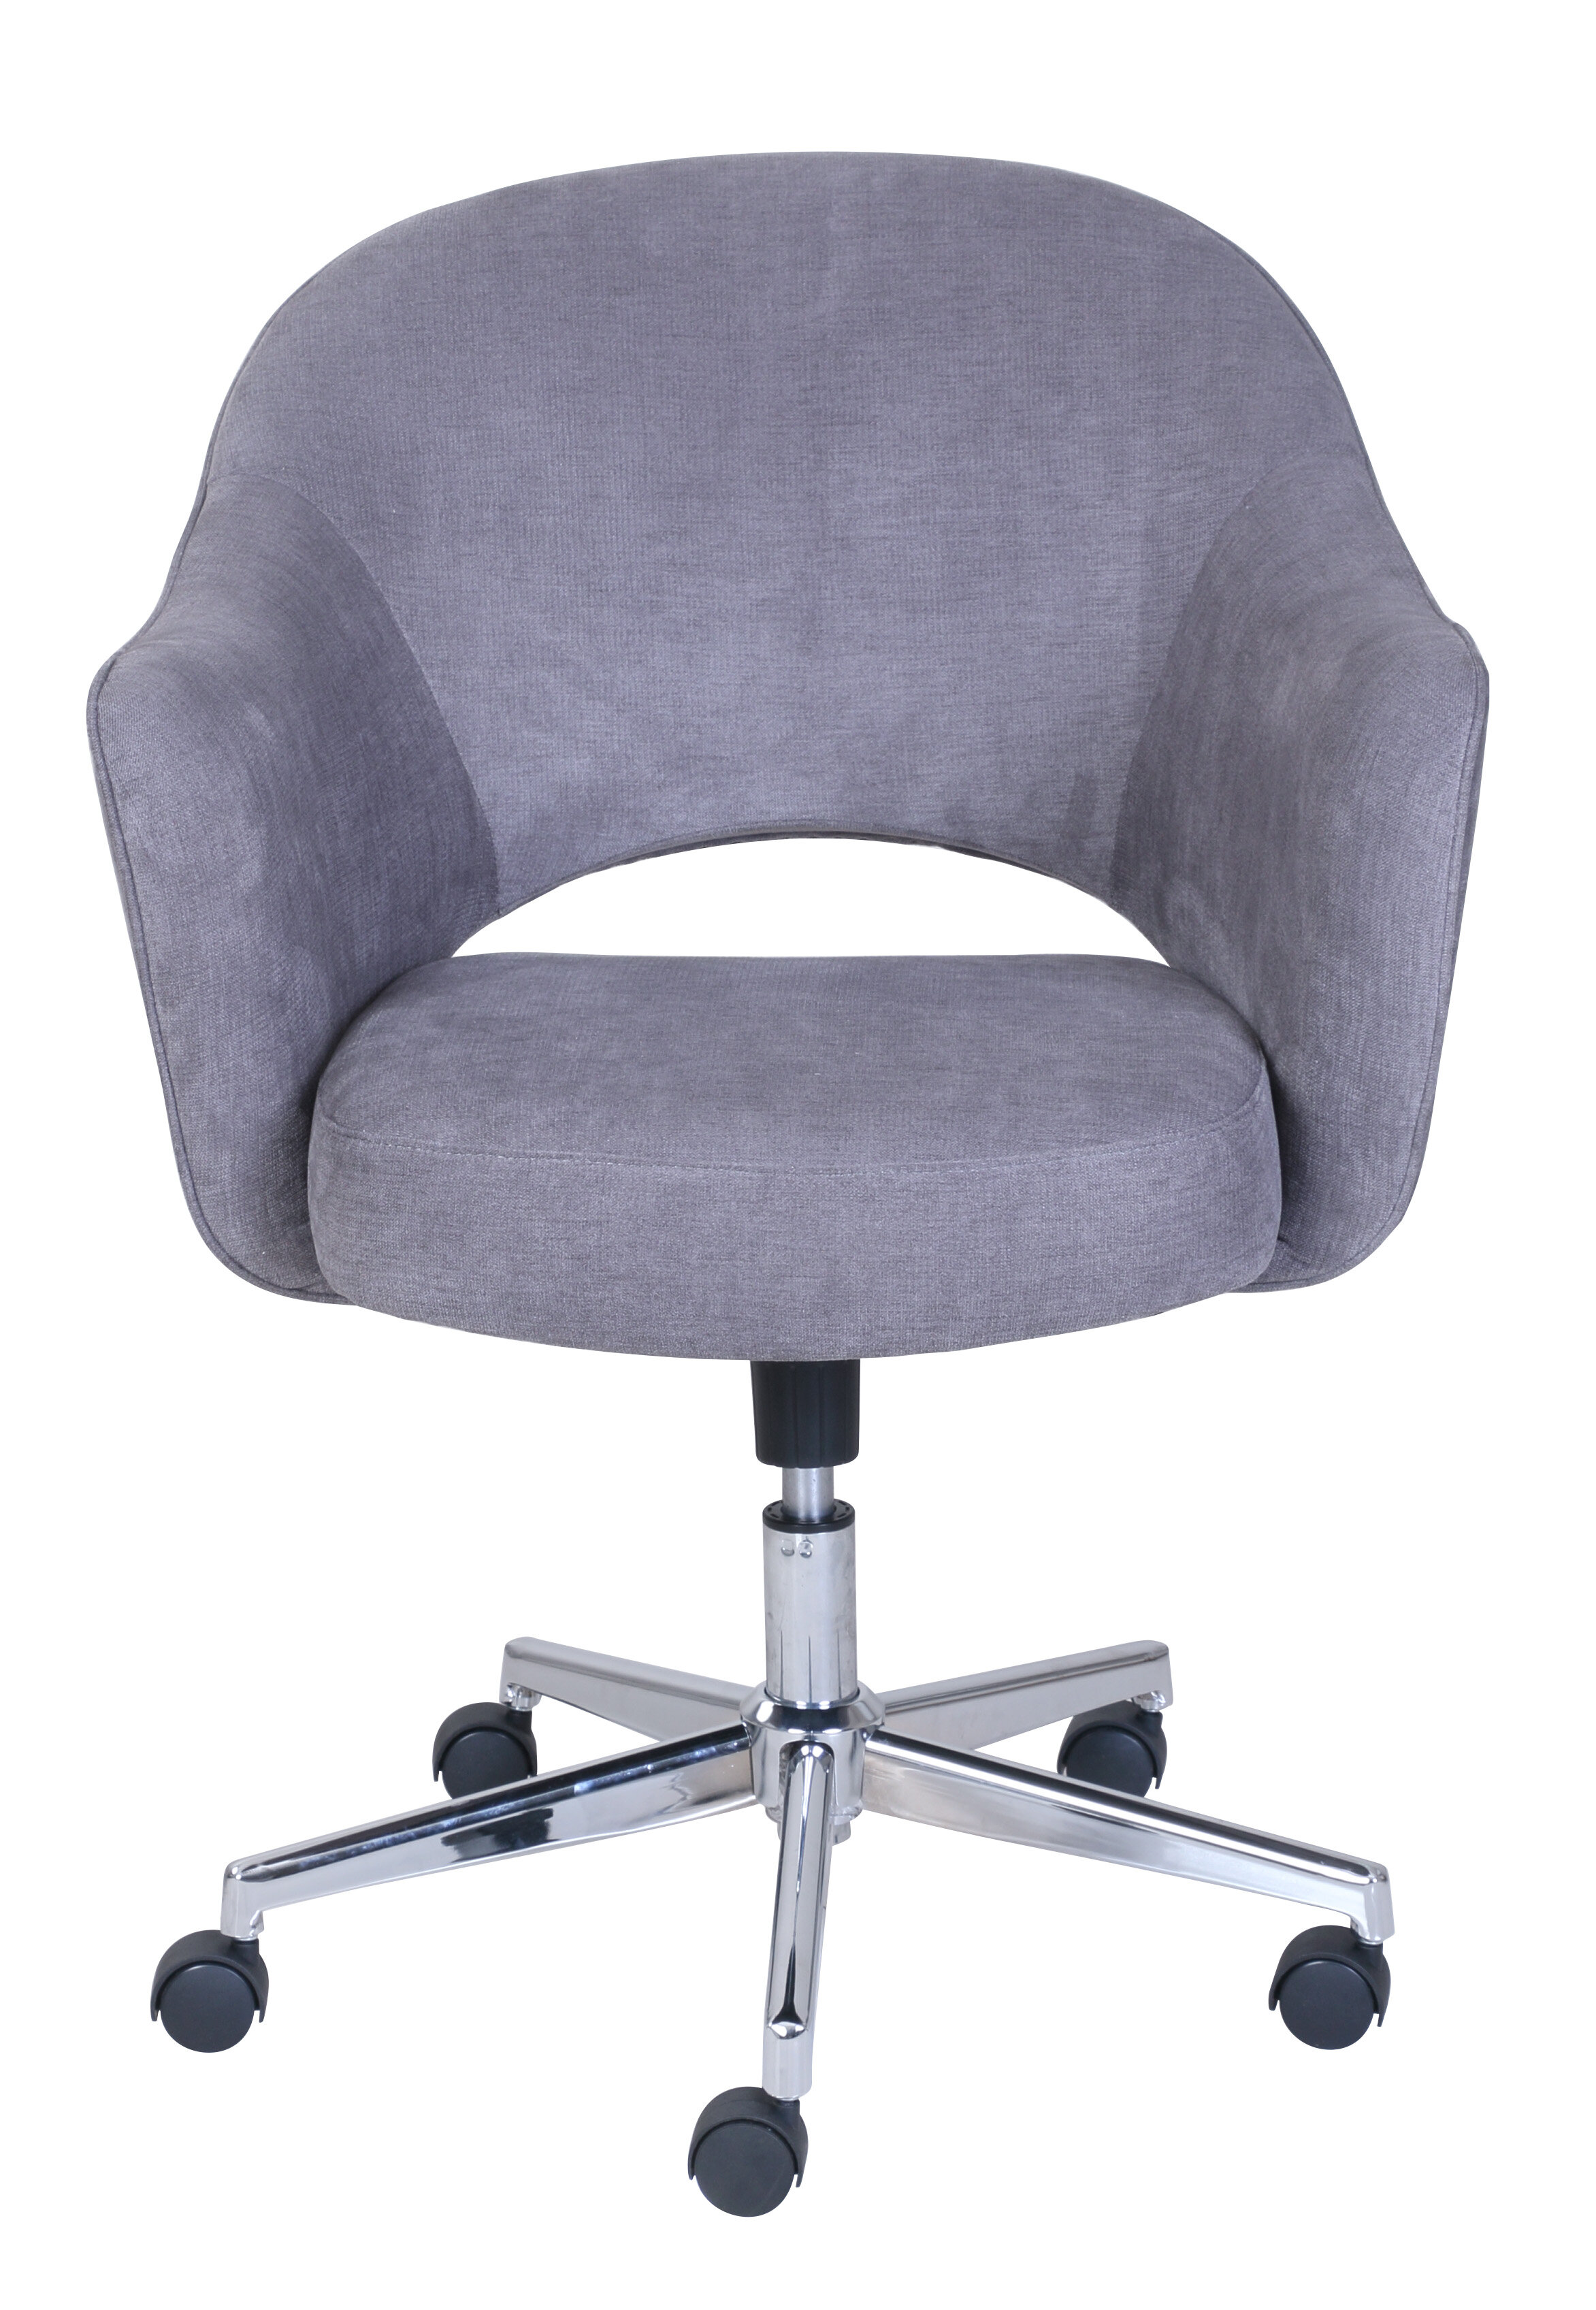 p lof chair with corliving high desk gaming back chairs blue office g grey adjustable and arms height ergonomic